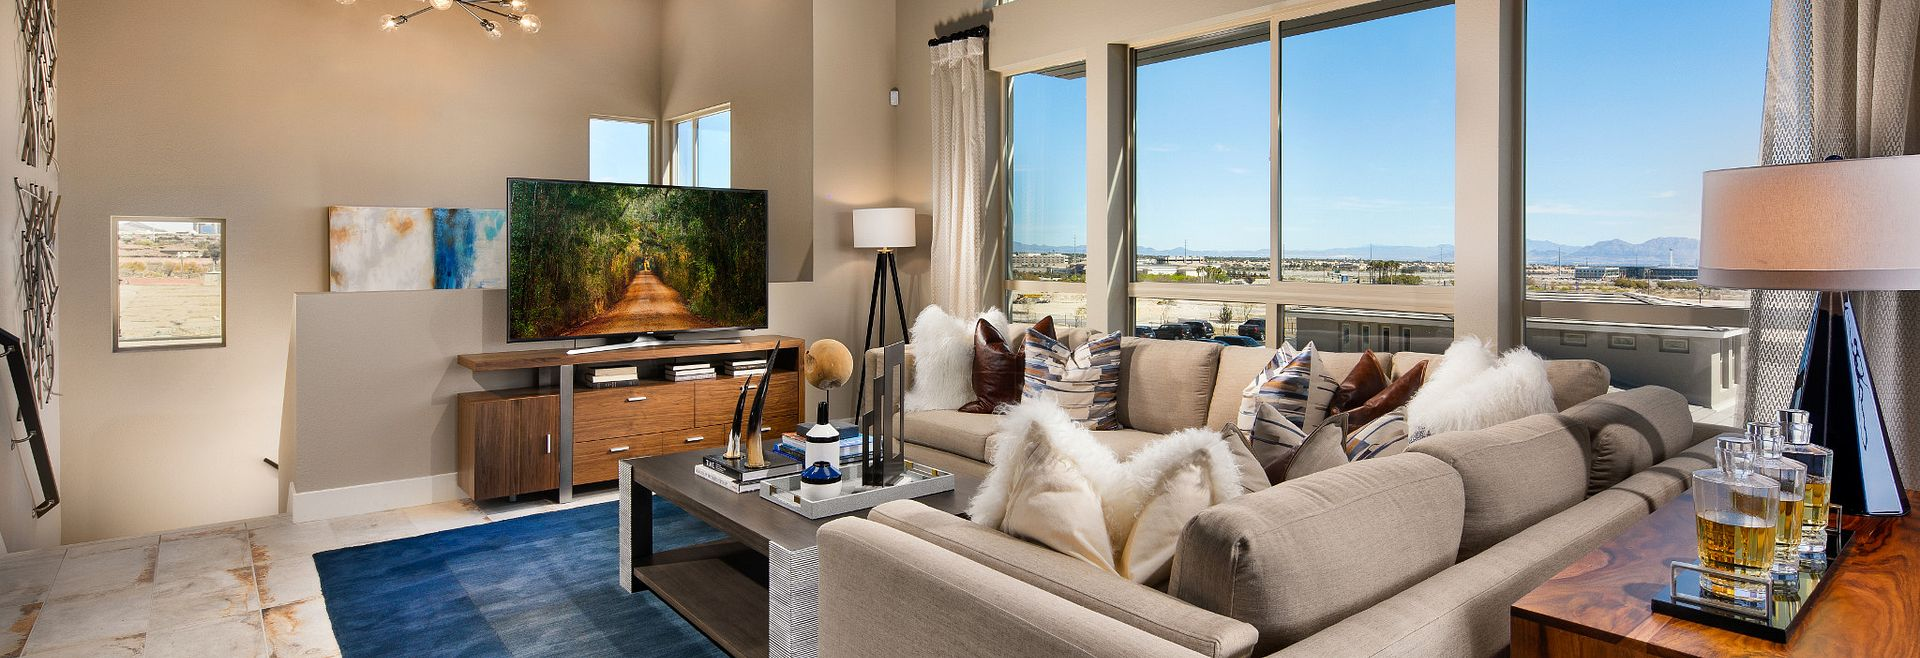 Trilogy Summerlin Apex Great Room